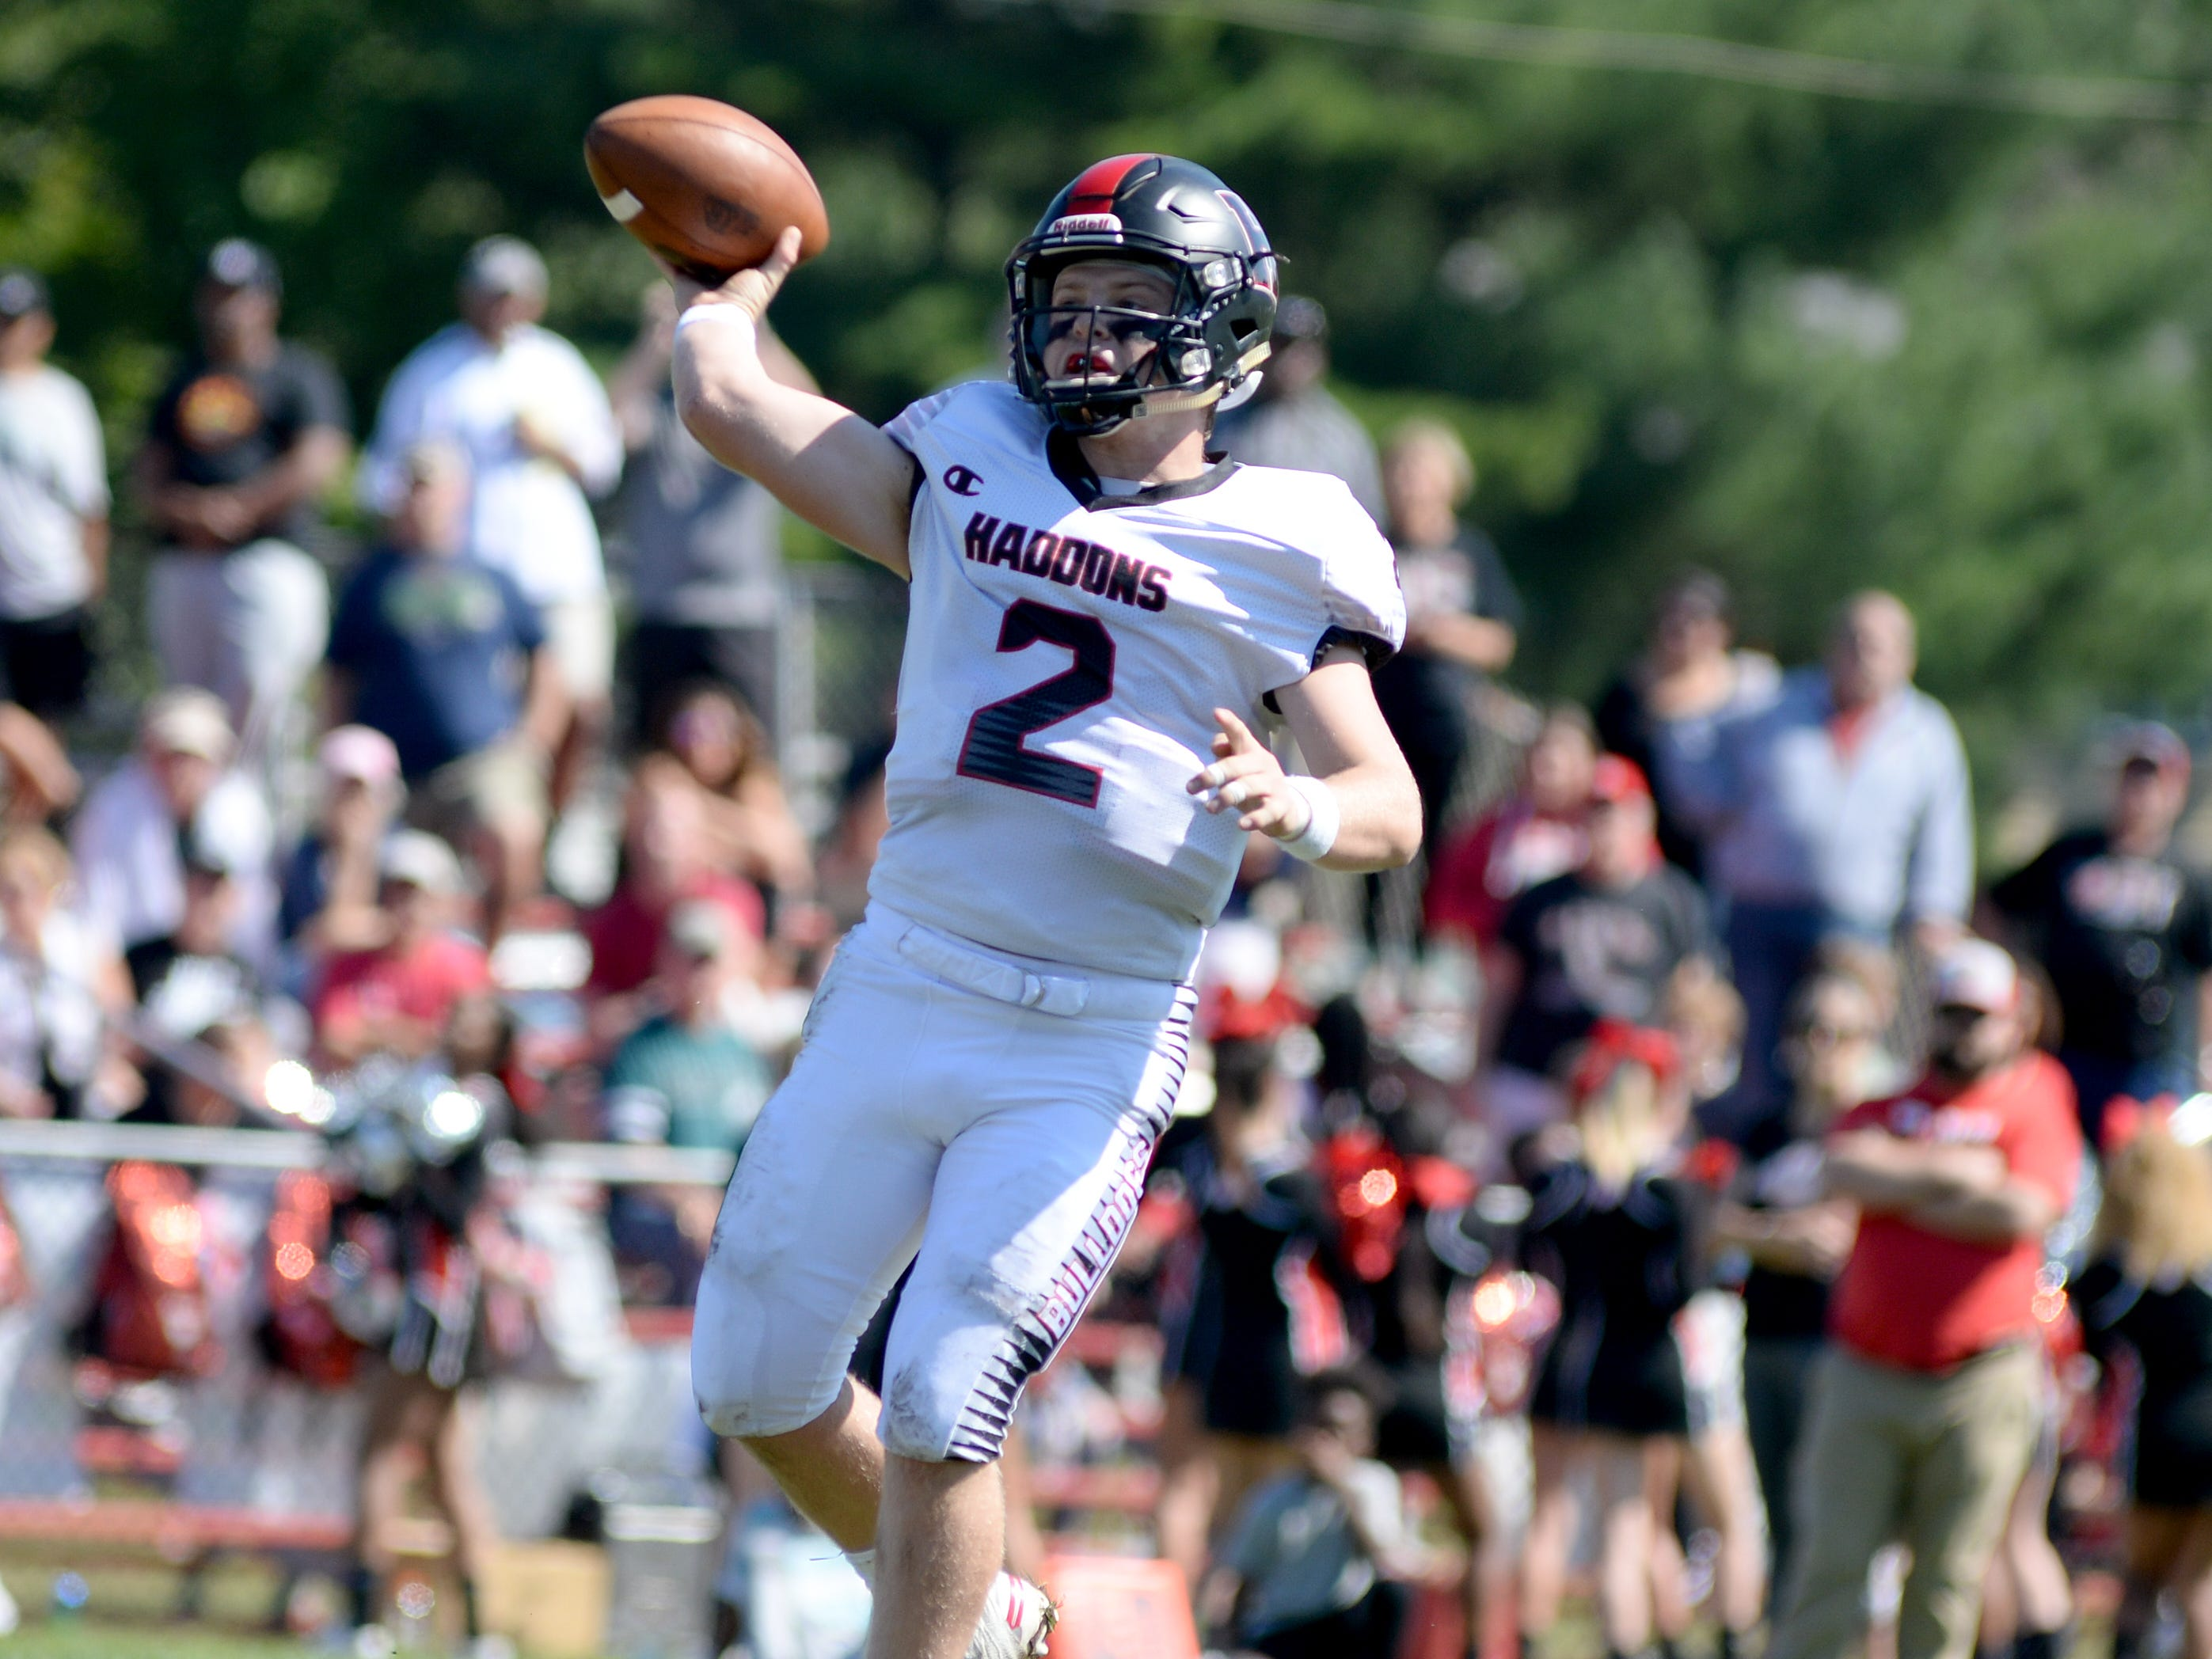 Haddonfield quarter back Jay Foley throws a pass during Saturday's game against St. Joseph, Sept. 29, 2018.